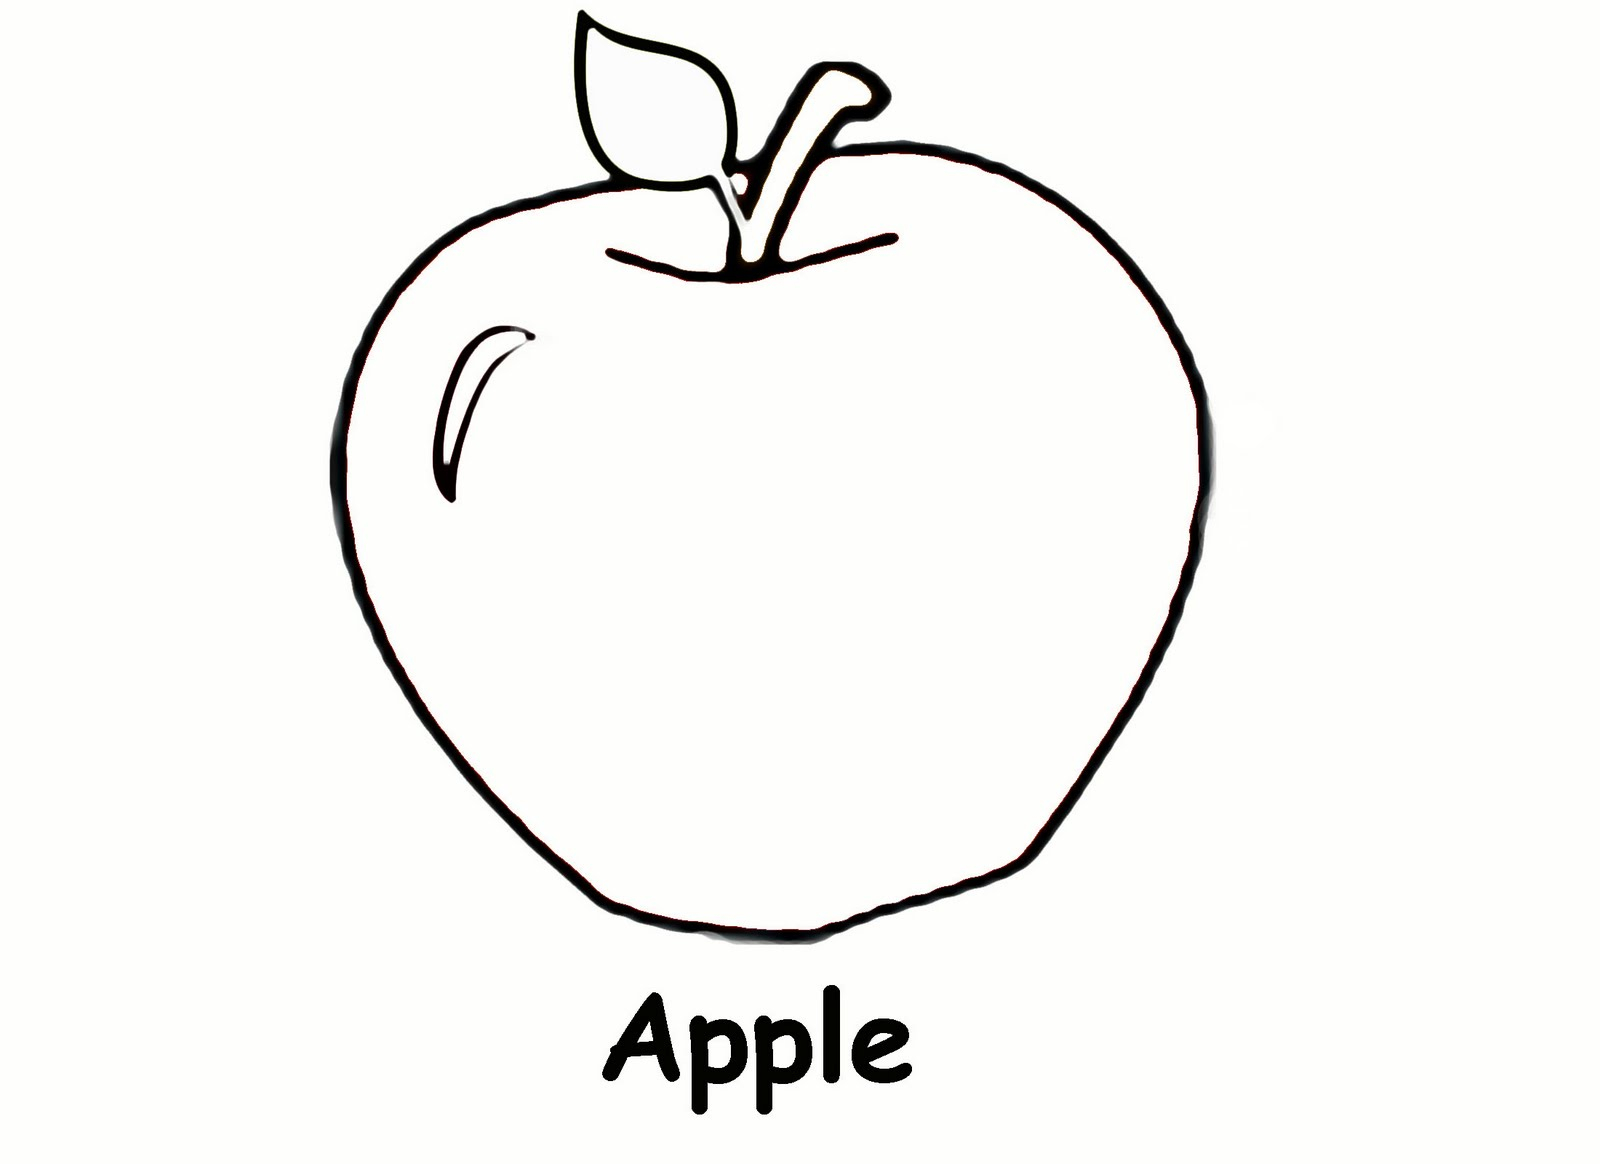 Free Printable Apple Coloring Pages for Kids Printable Of Back to School Coloring Pages for Kindergarten 1480—2168 Printable